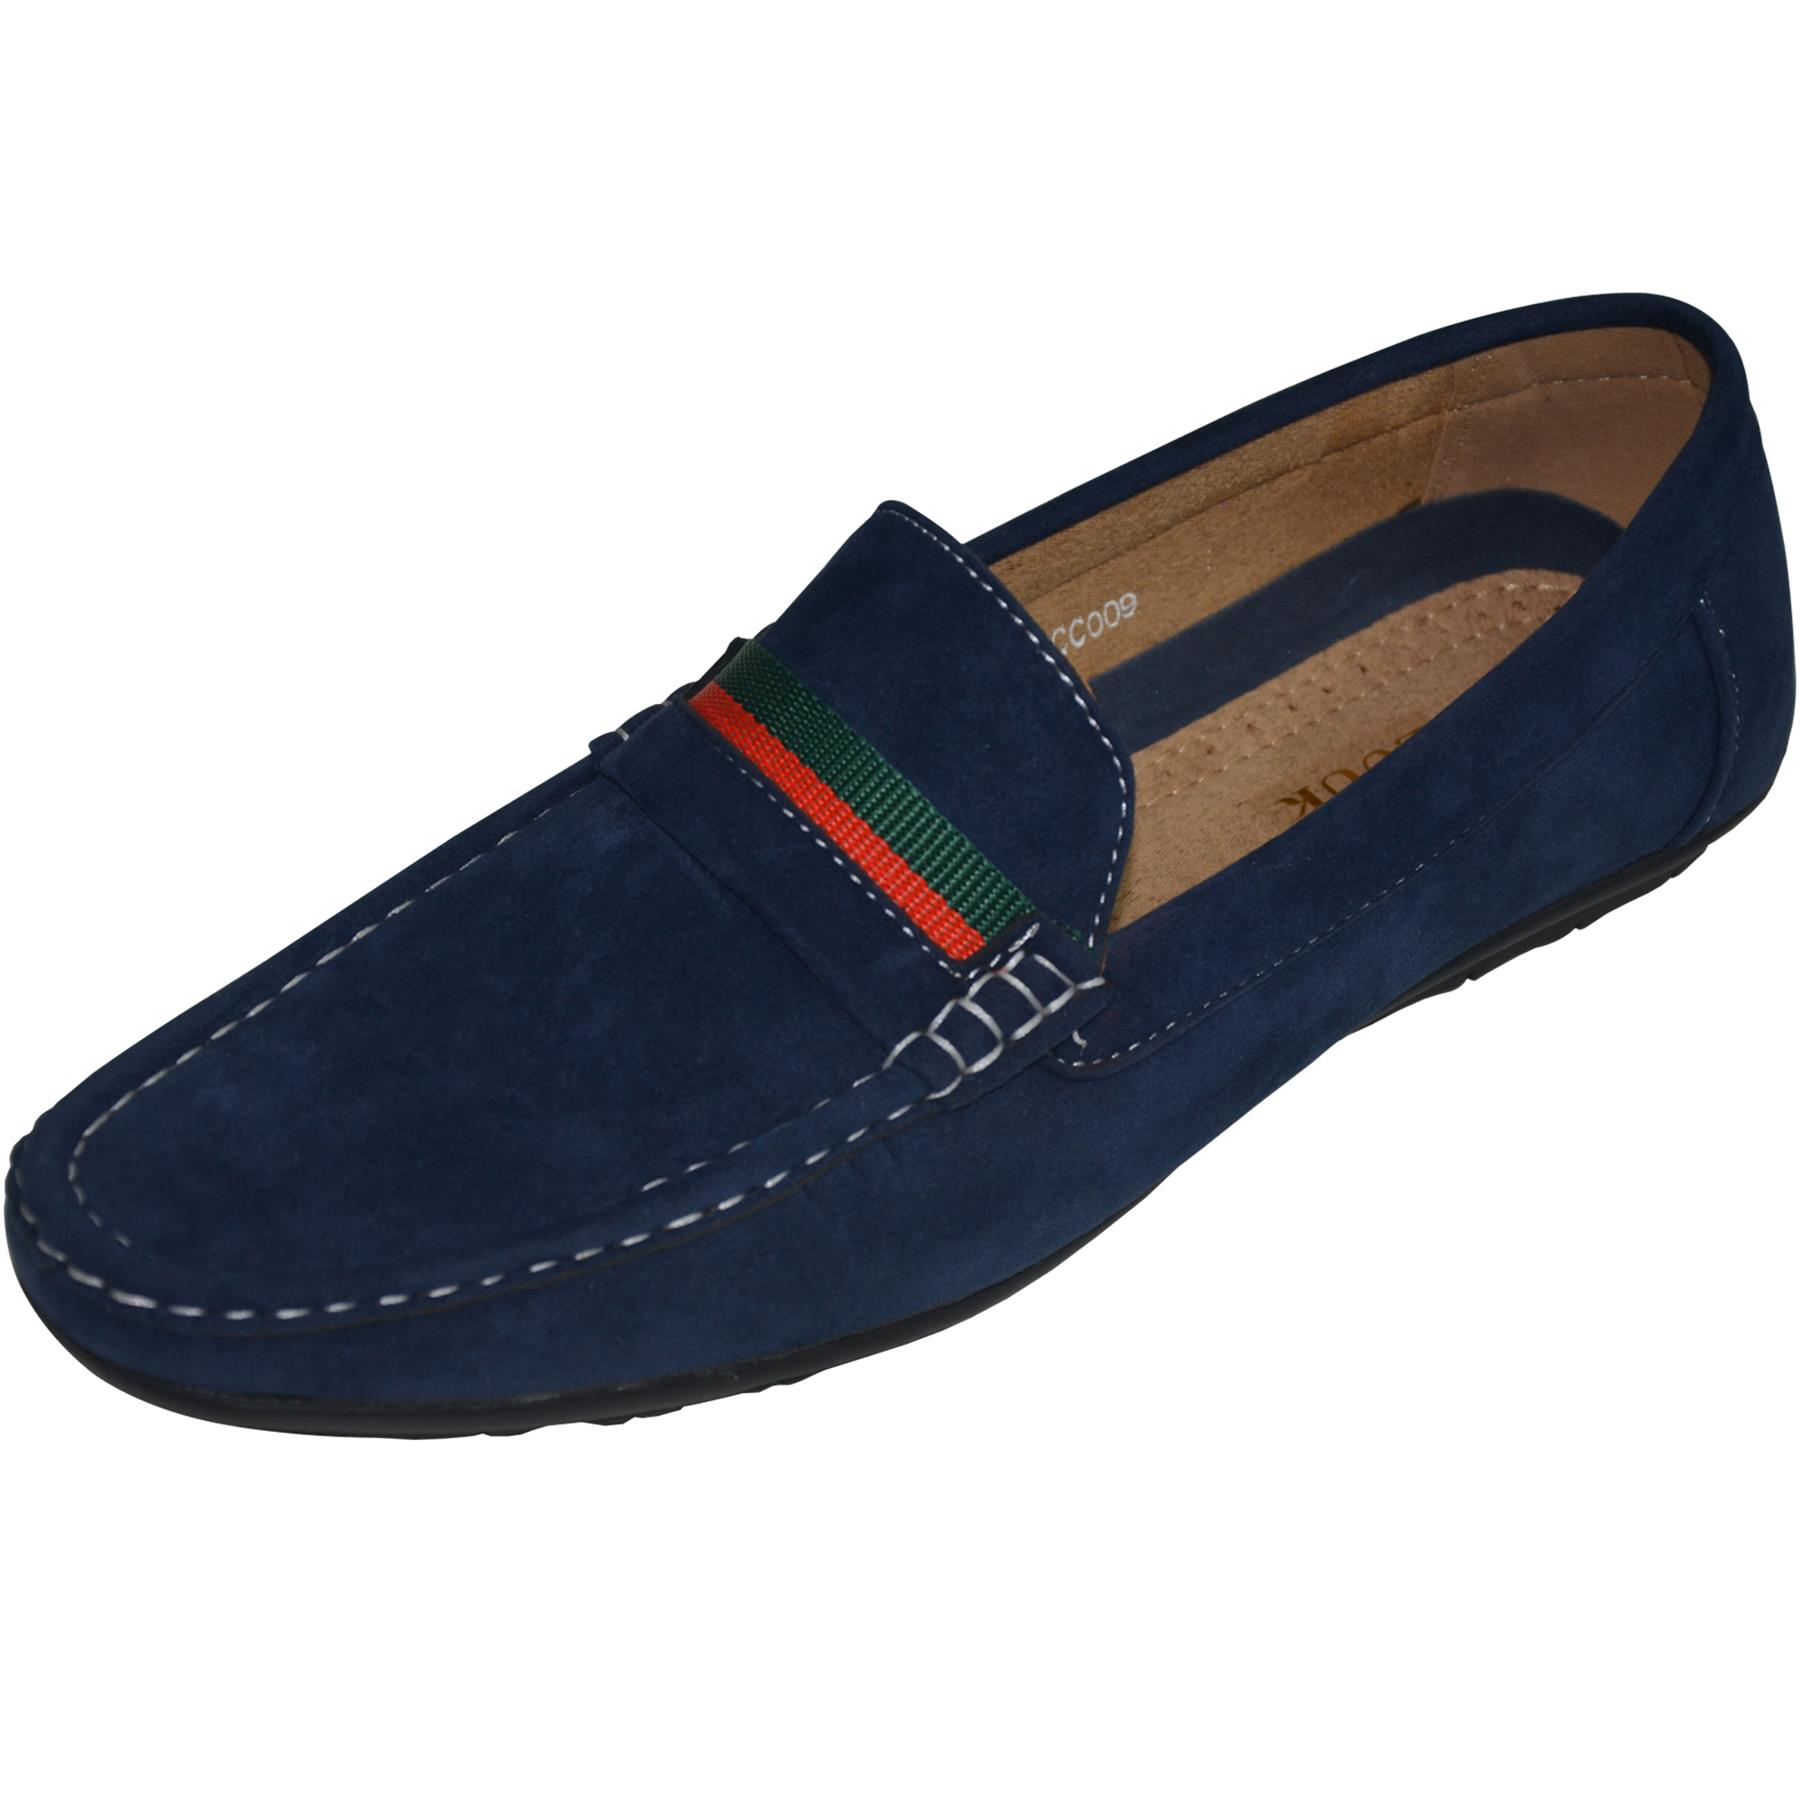 Mens-Slip-Ons-Shoes-Boat-Deck-Driving-Smart-Buckle-Moccasins-Suede-Look-Loafers thumbnail 34